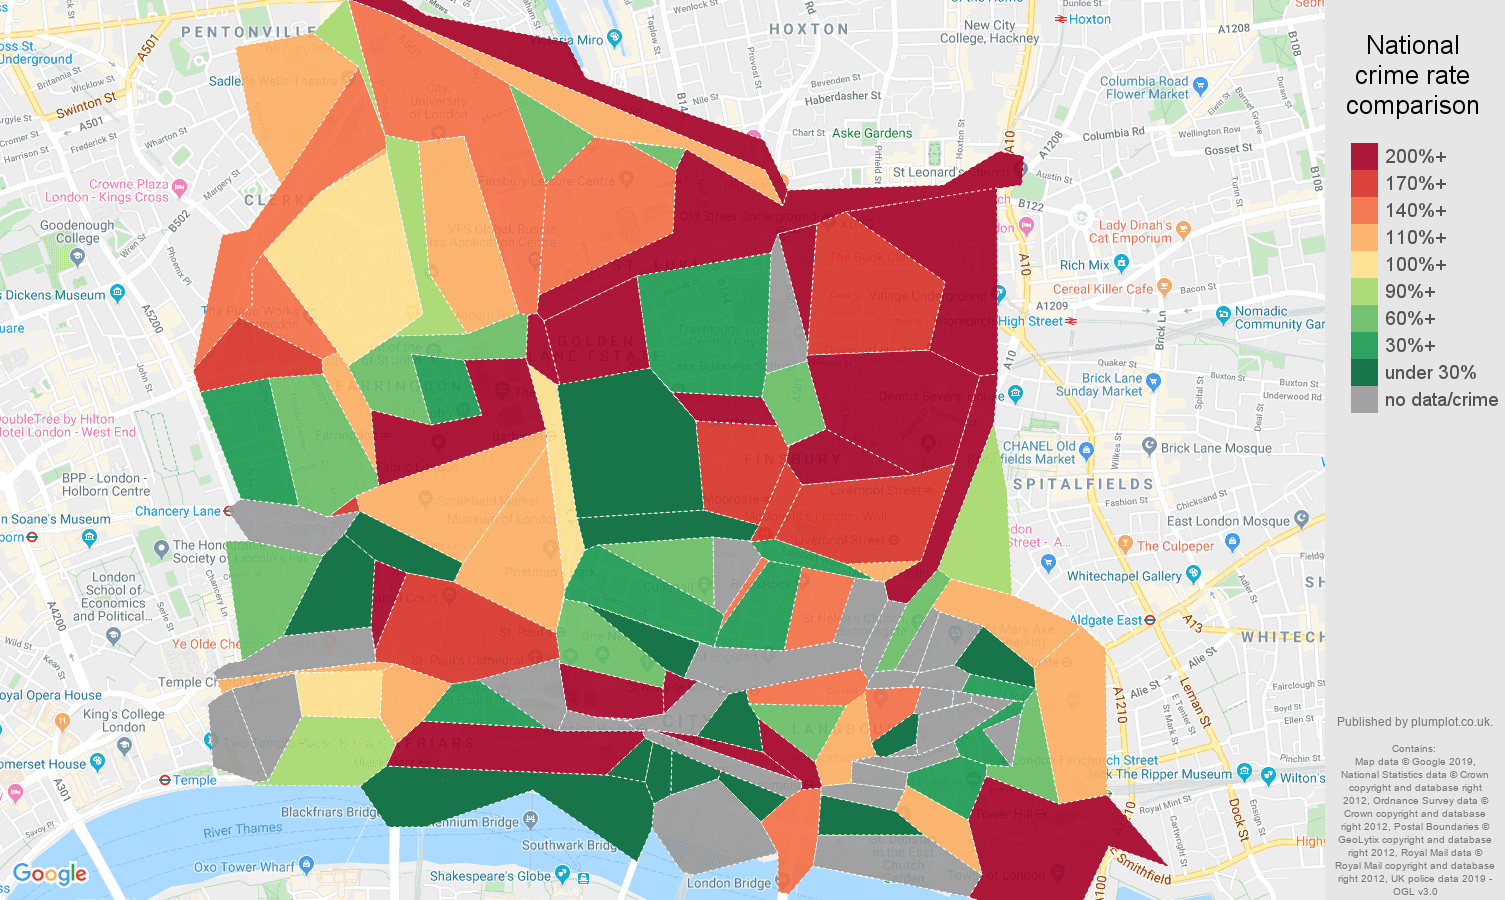 East Central London other theft crime rate comparison map